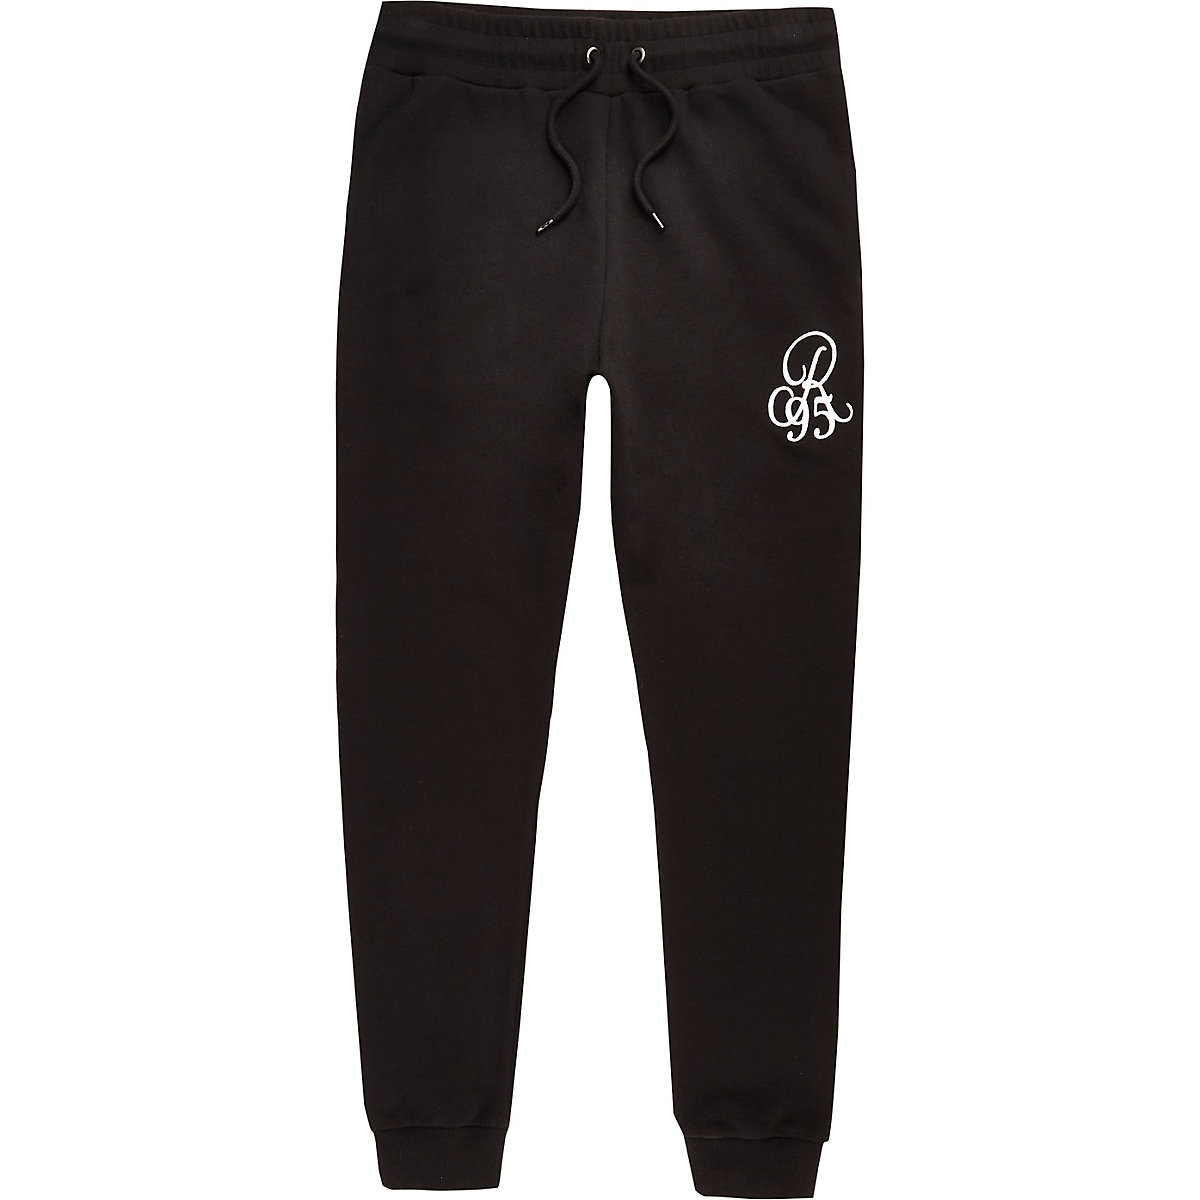 Big and Tall black jogging bottoms